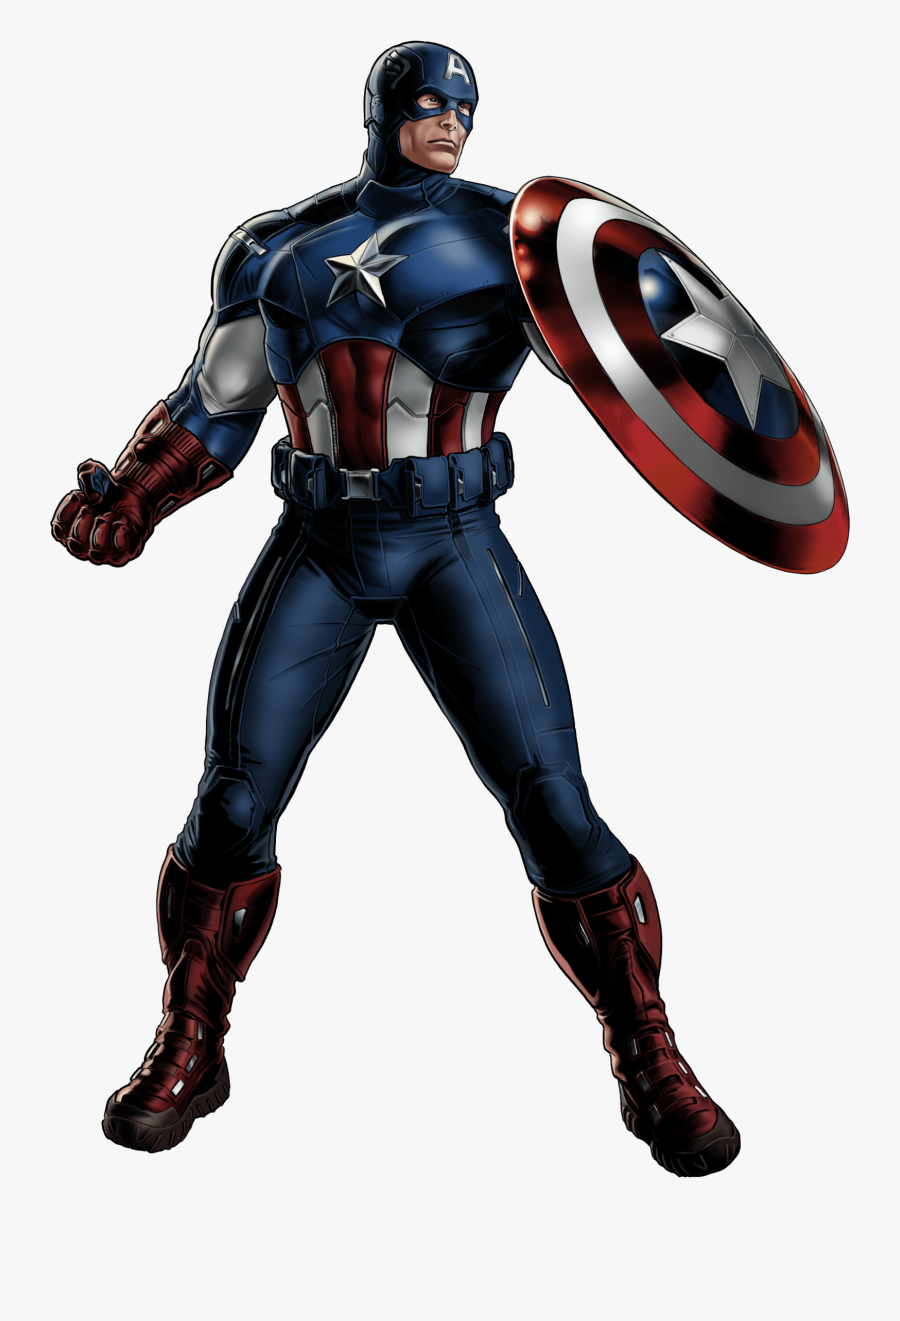 Captain America Looking Right - Avengers Captain America Png, Transparent Clipart